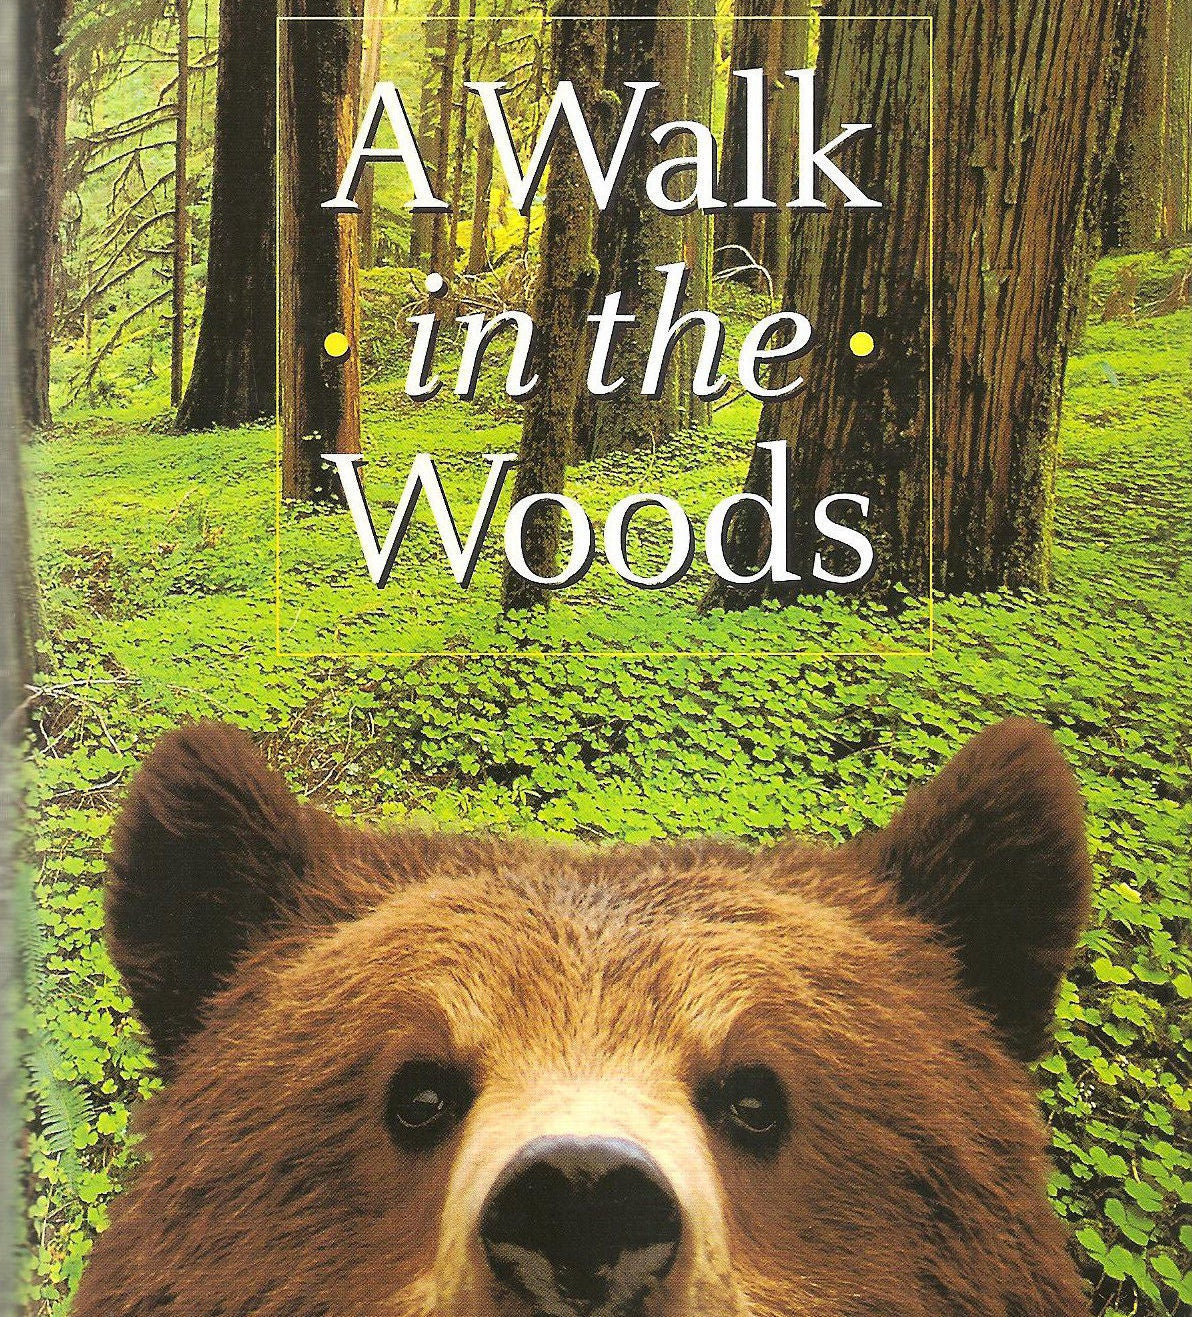 a walk in the woods novel cover featuring a brown bear